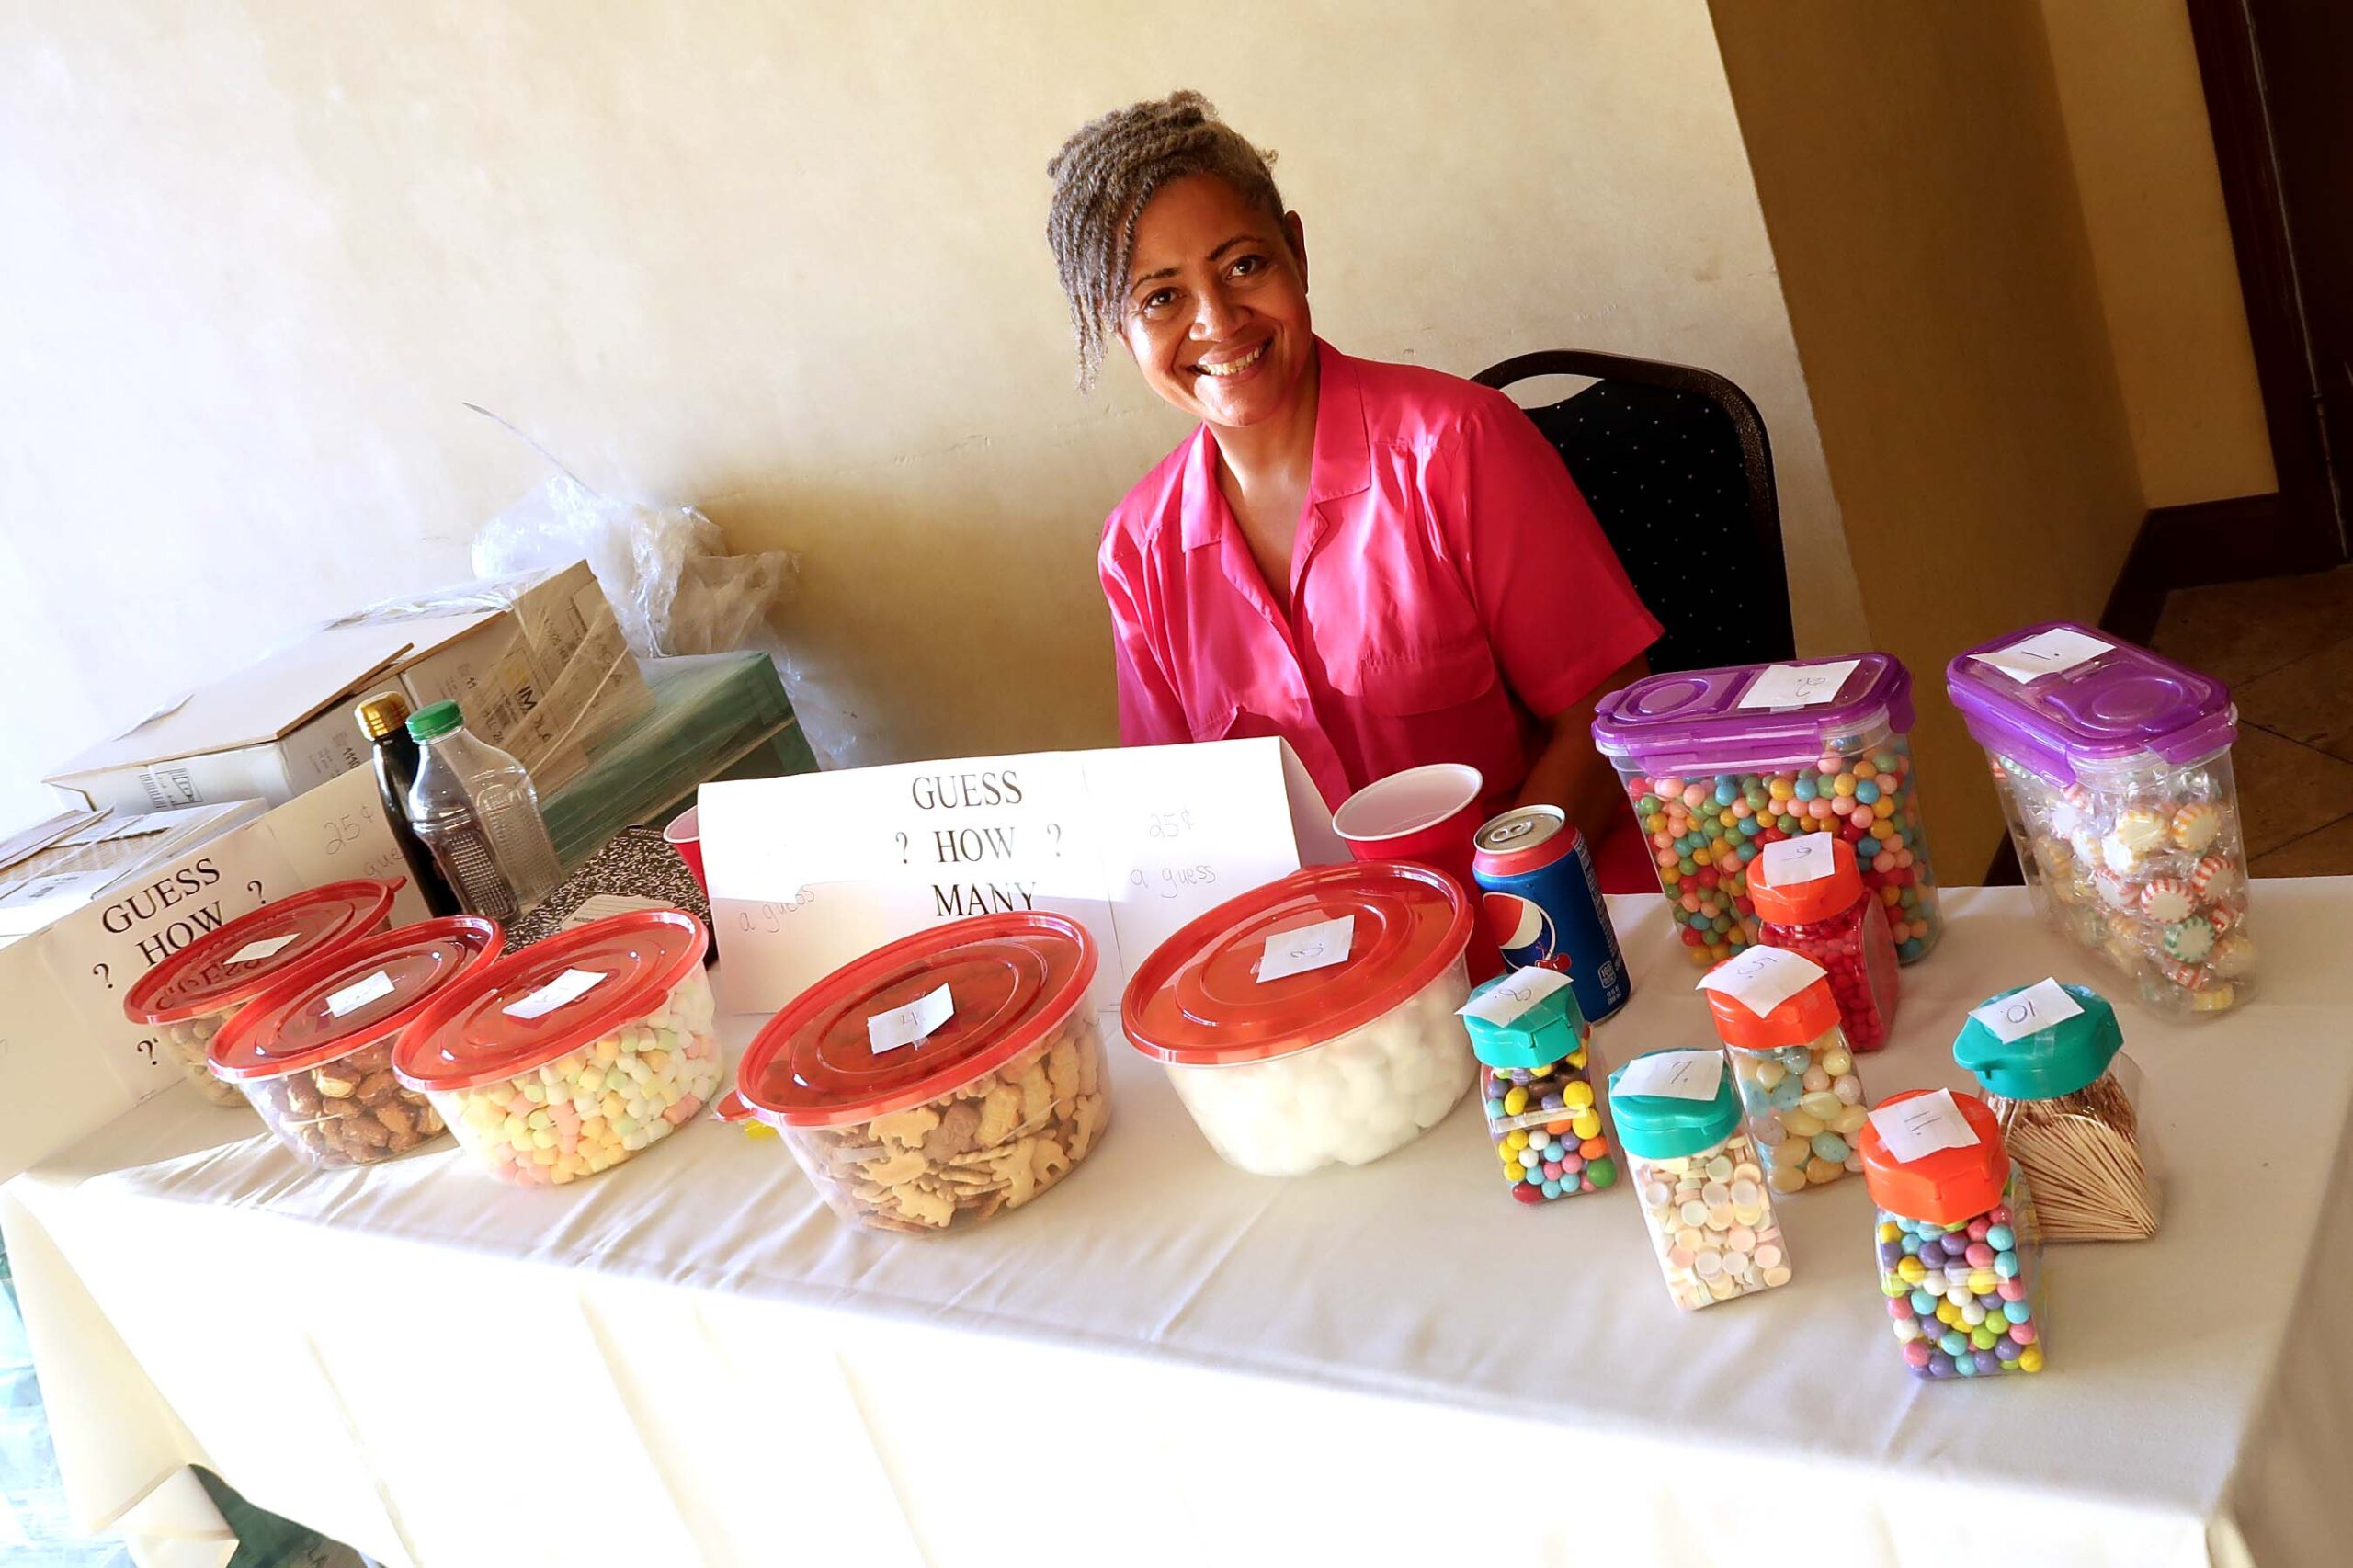 There was a guessing game table at the entrance to the Johnson-Barnes Family Reunion Meet and Greet. Liz Osborne overseeing containers of peanuts, M&Ms, toothpicks, cotton balls, and other items. Members wrote their guess(s) of numbers in each container and closest to correct numbers won. Winners were announced at the banquet and prizes were the containers